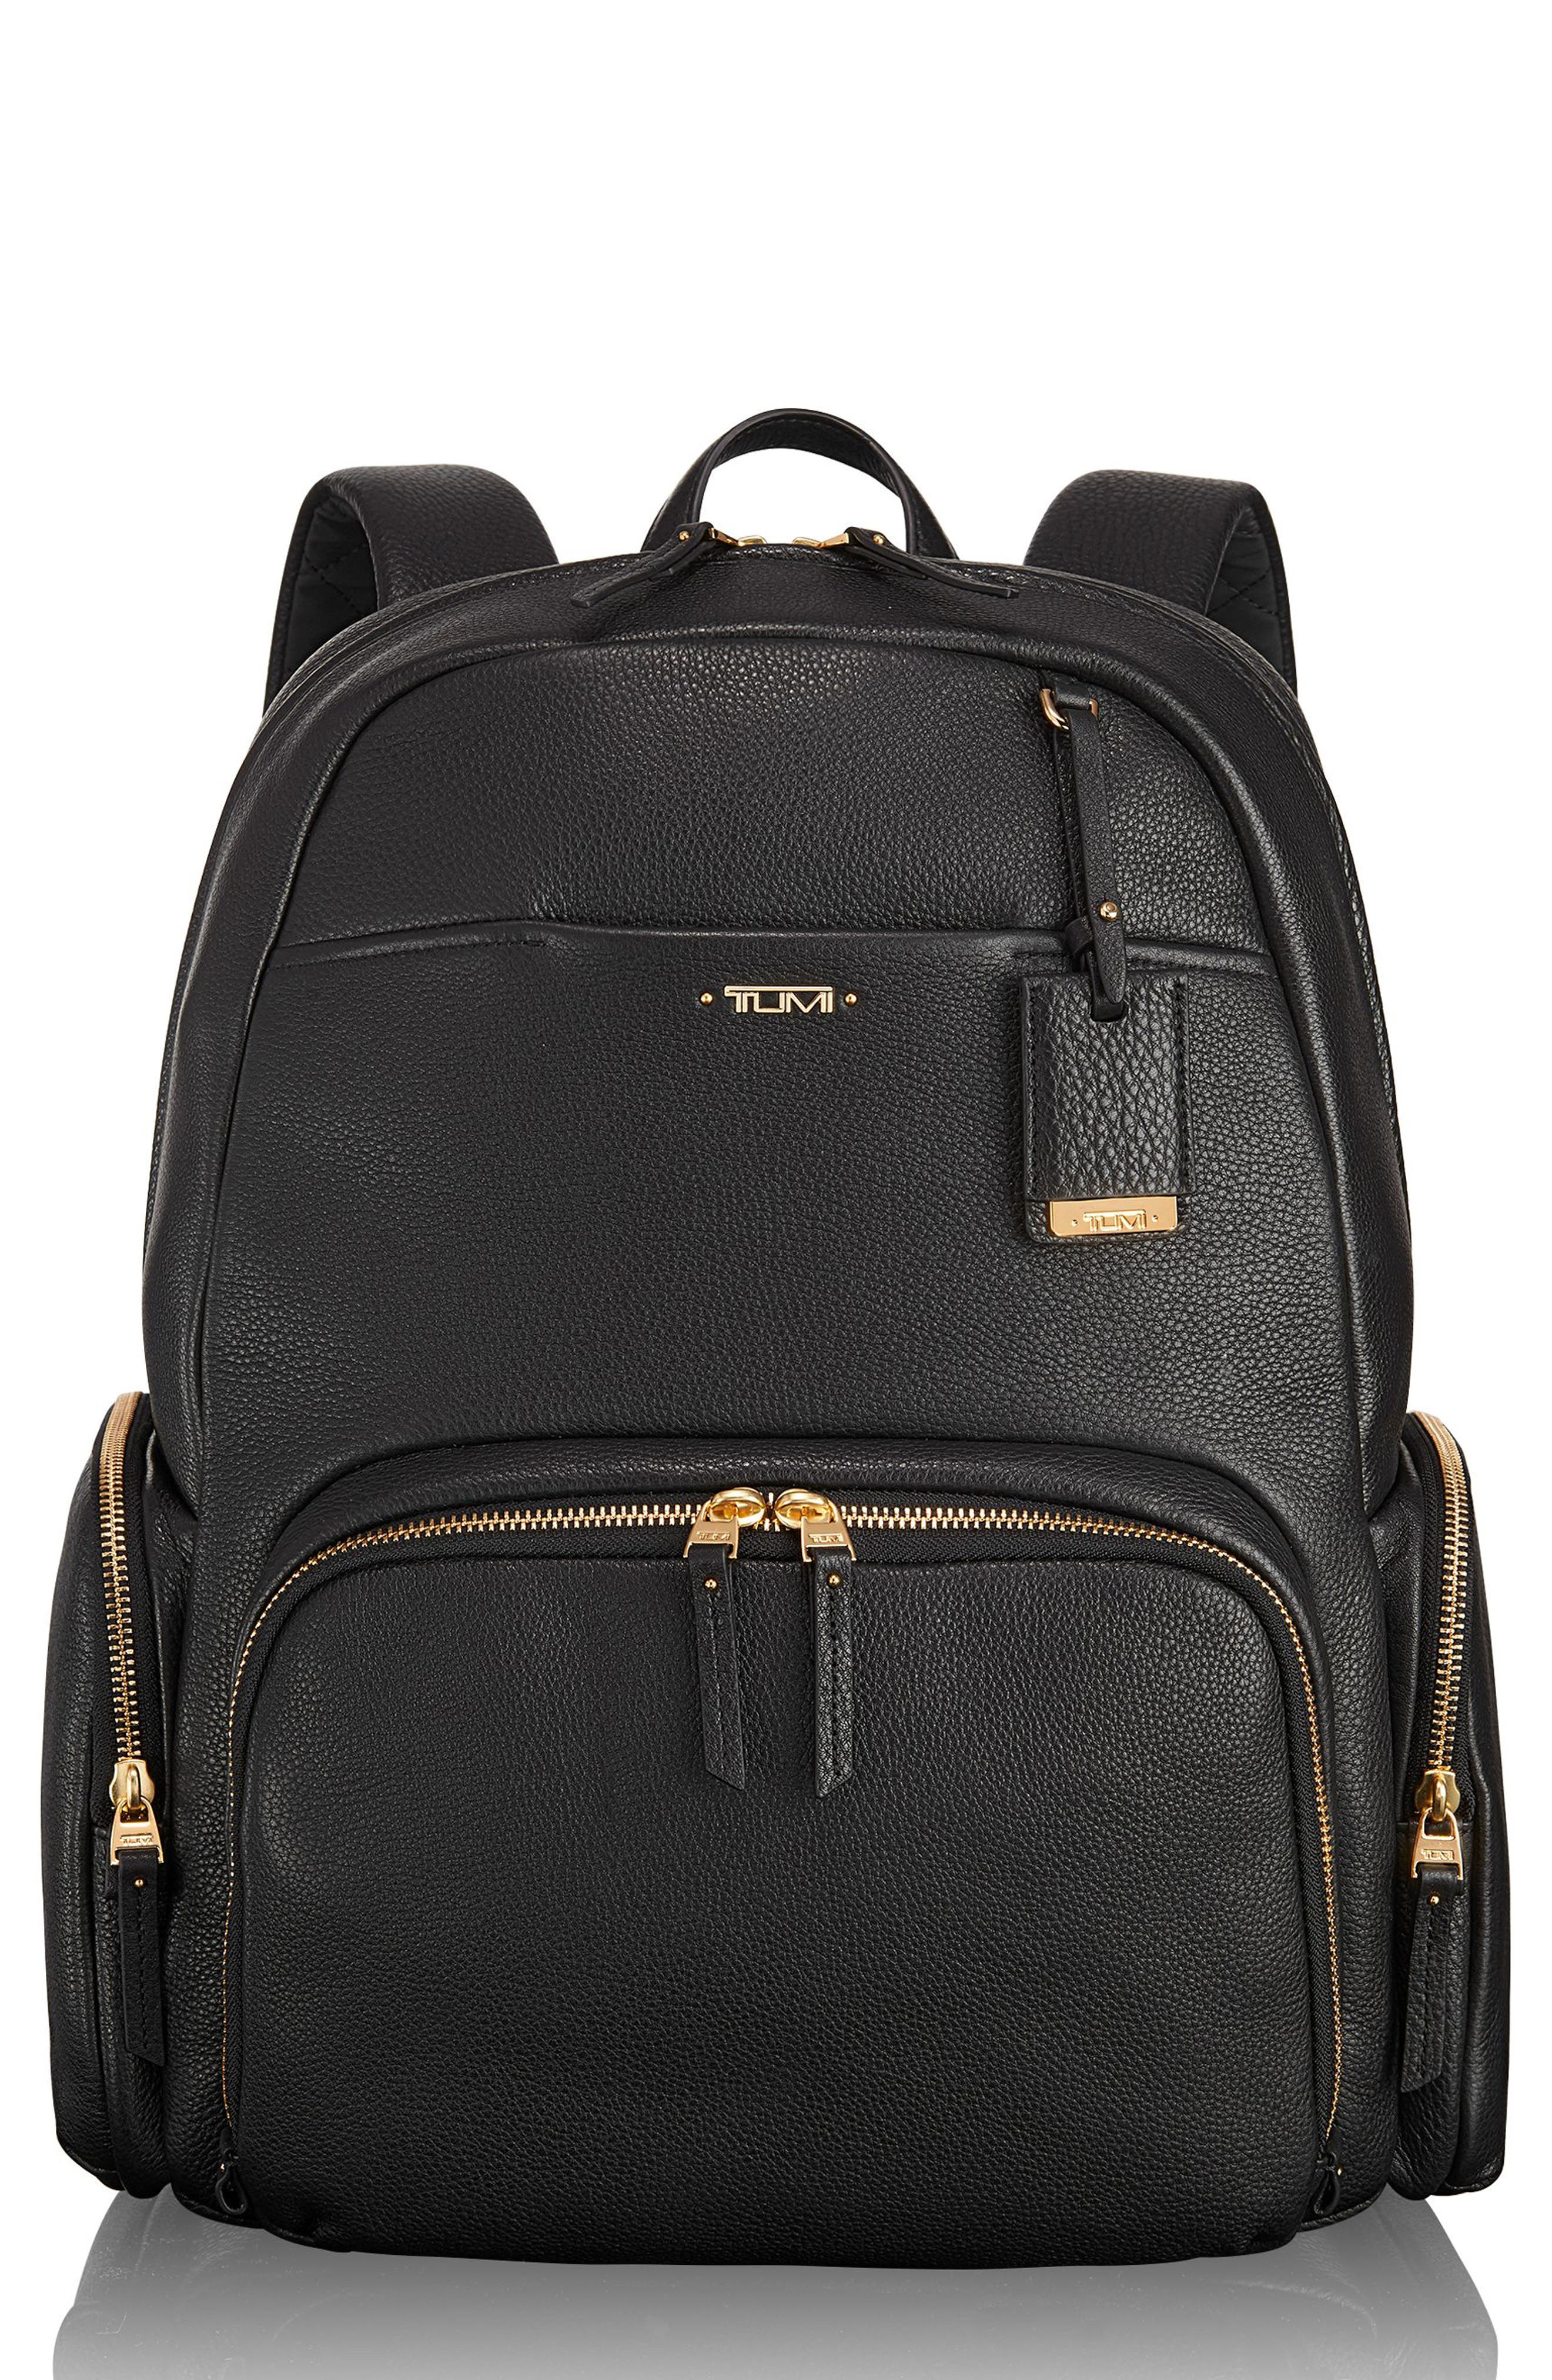 Calais Leather Computer Backpack,                         Main,                         color, 001